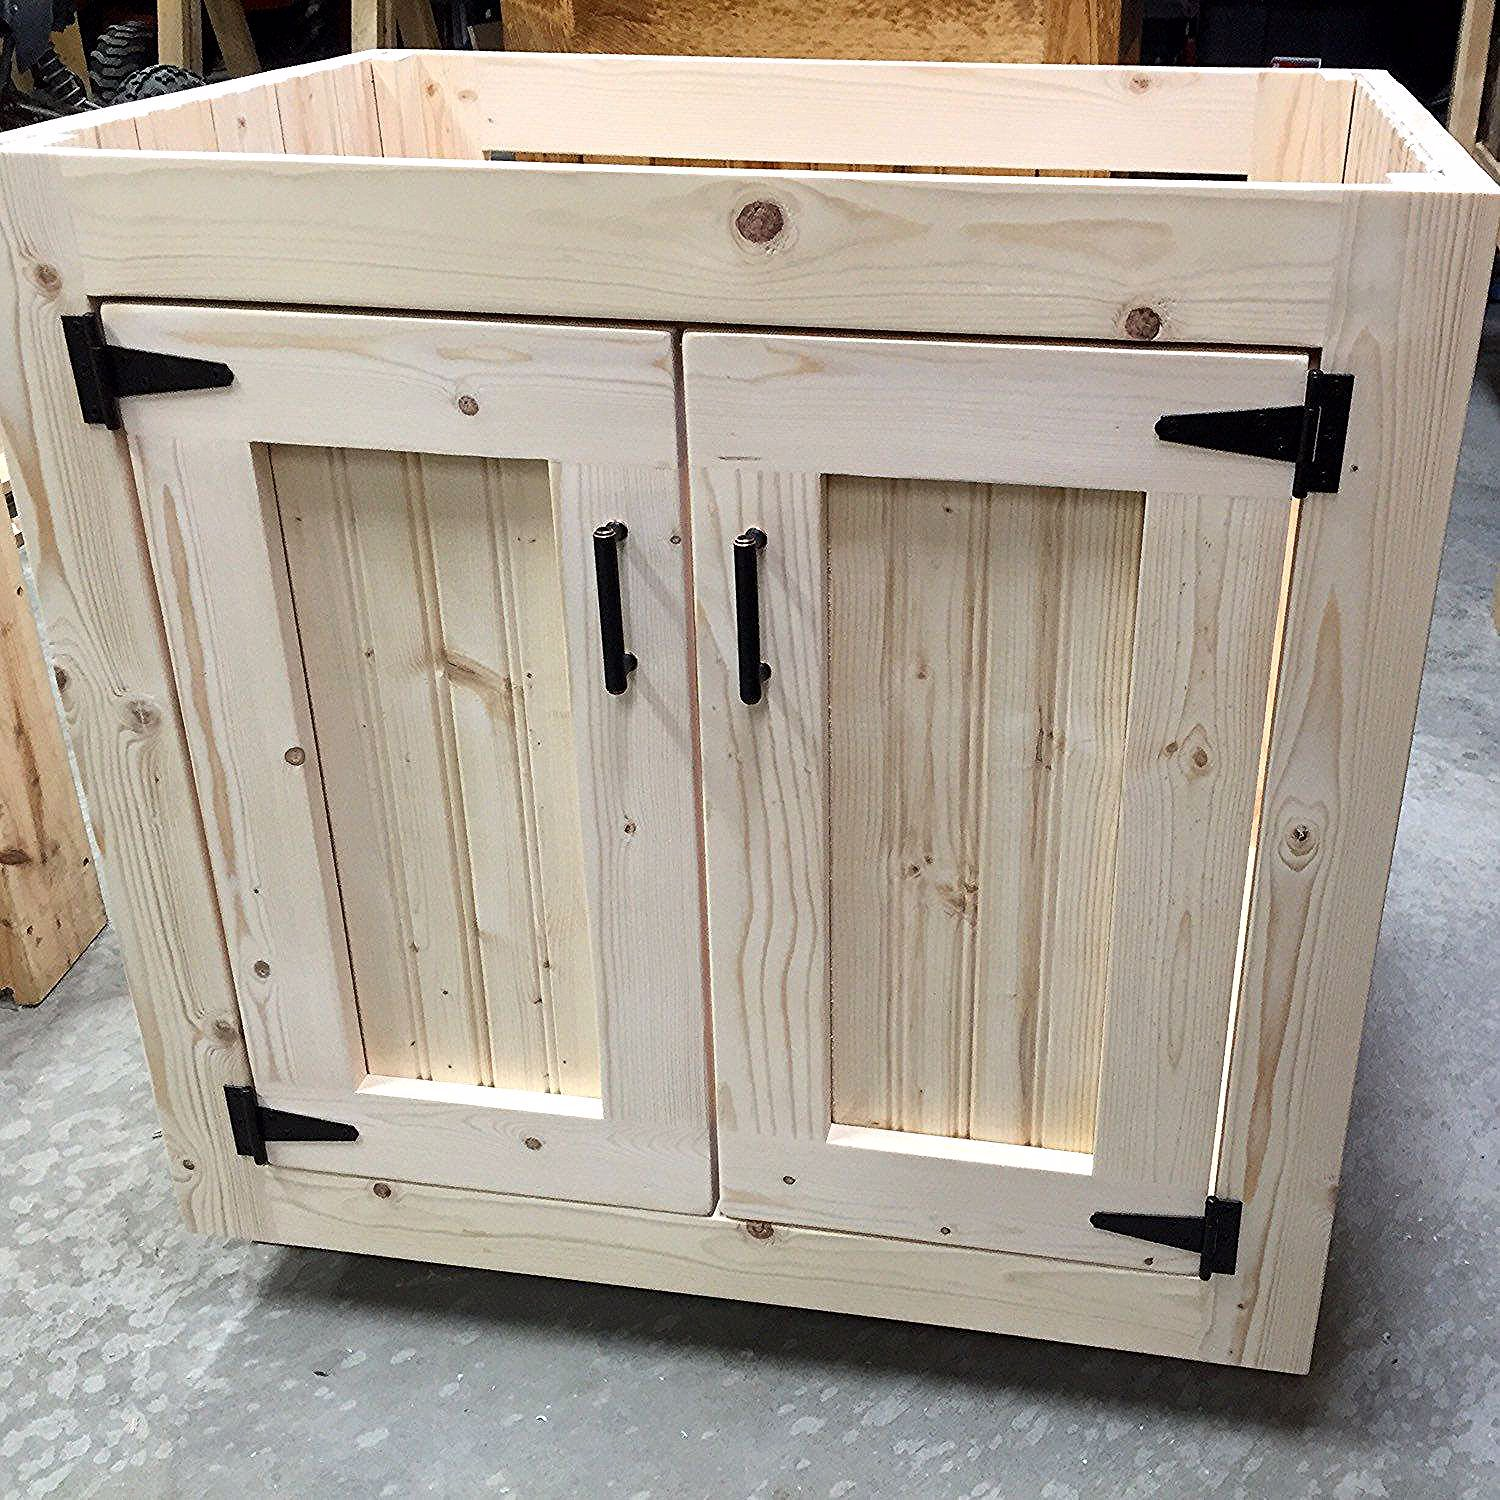 Just Shipped Out This Custom Beauty In 2020 Pallet Kitchen Cabinets Diy Kitchen Cabinets Diy Bathroom Vanity